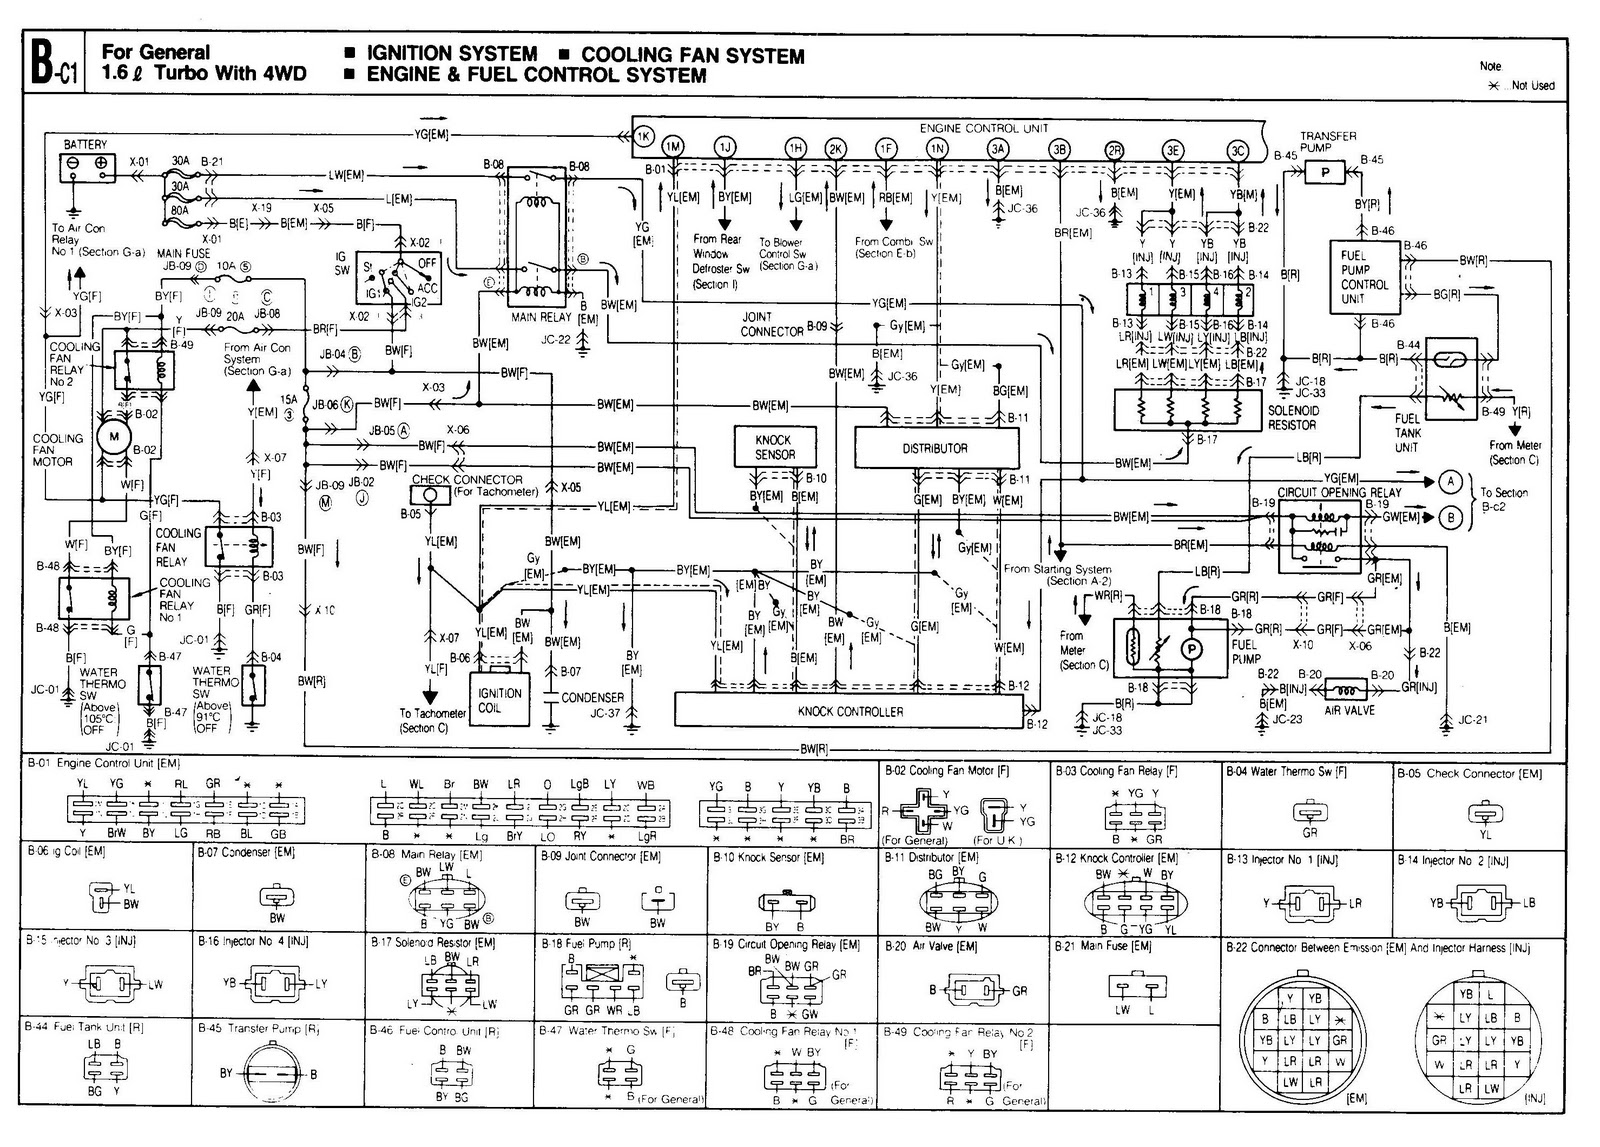 Bmw 750li Abs Wiring Diagram besides Mazda 3 Fuse Box also Lowrance Nema 2000 Wiring Diagram For also Uconnect Wiring Diagram furthermore 1988 ford ranger problems and recalls. on mazda wiring diagram